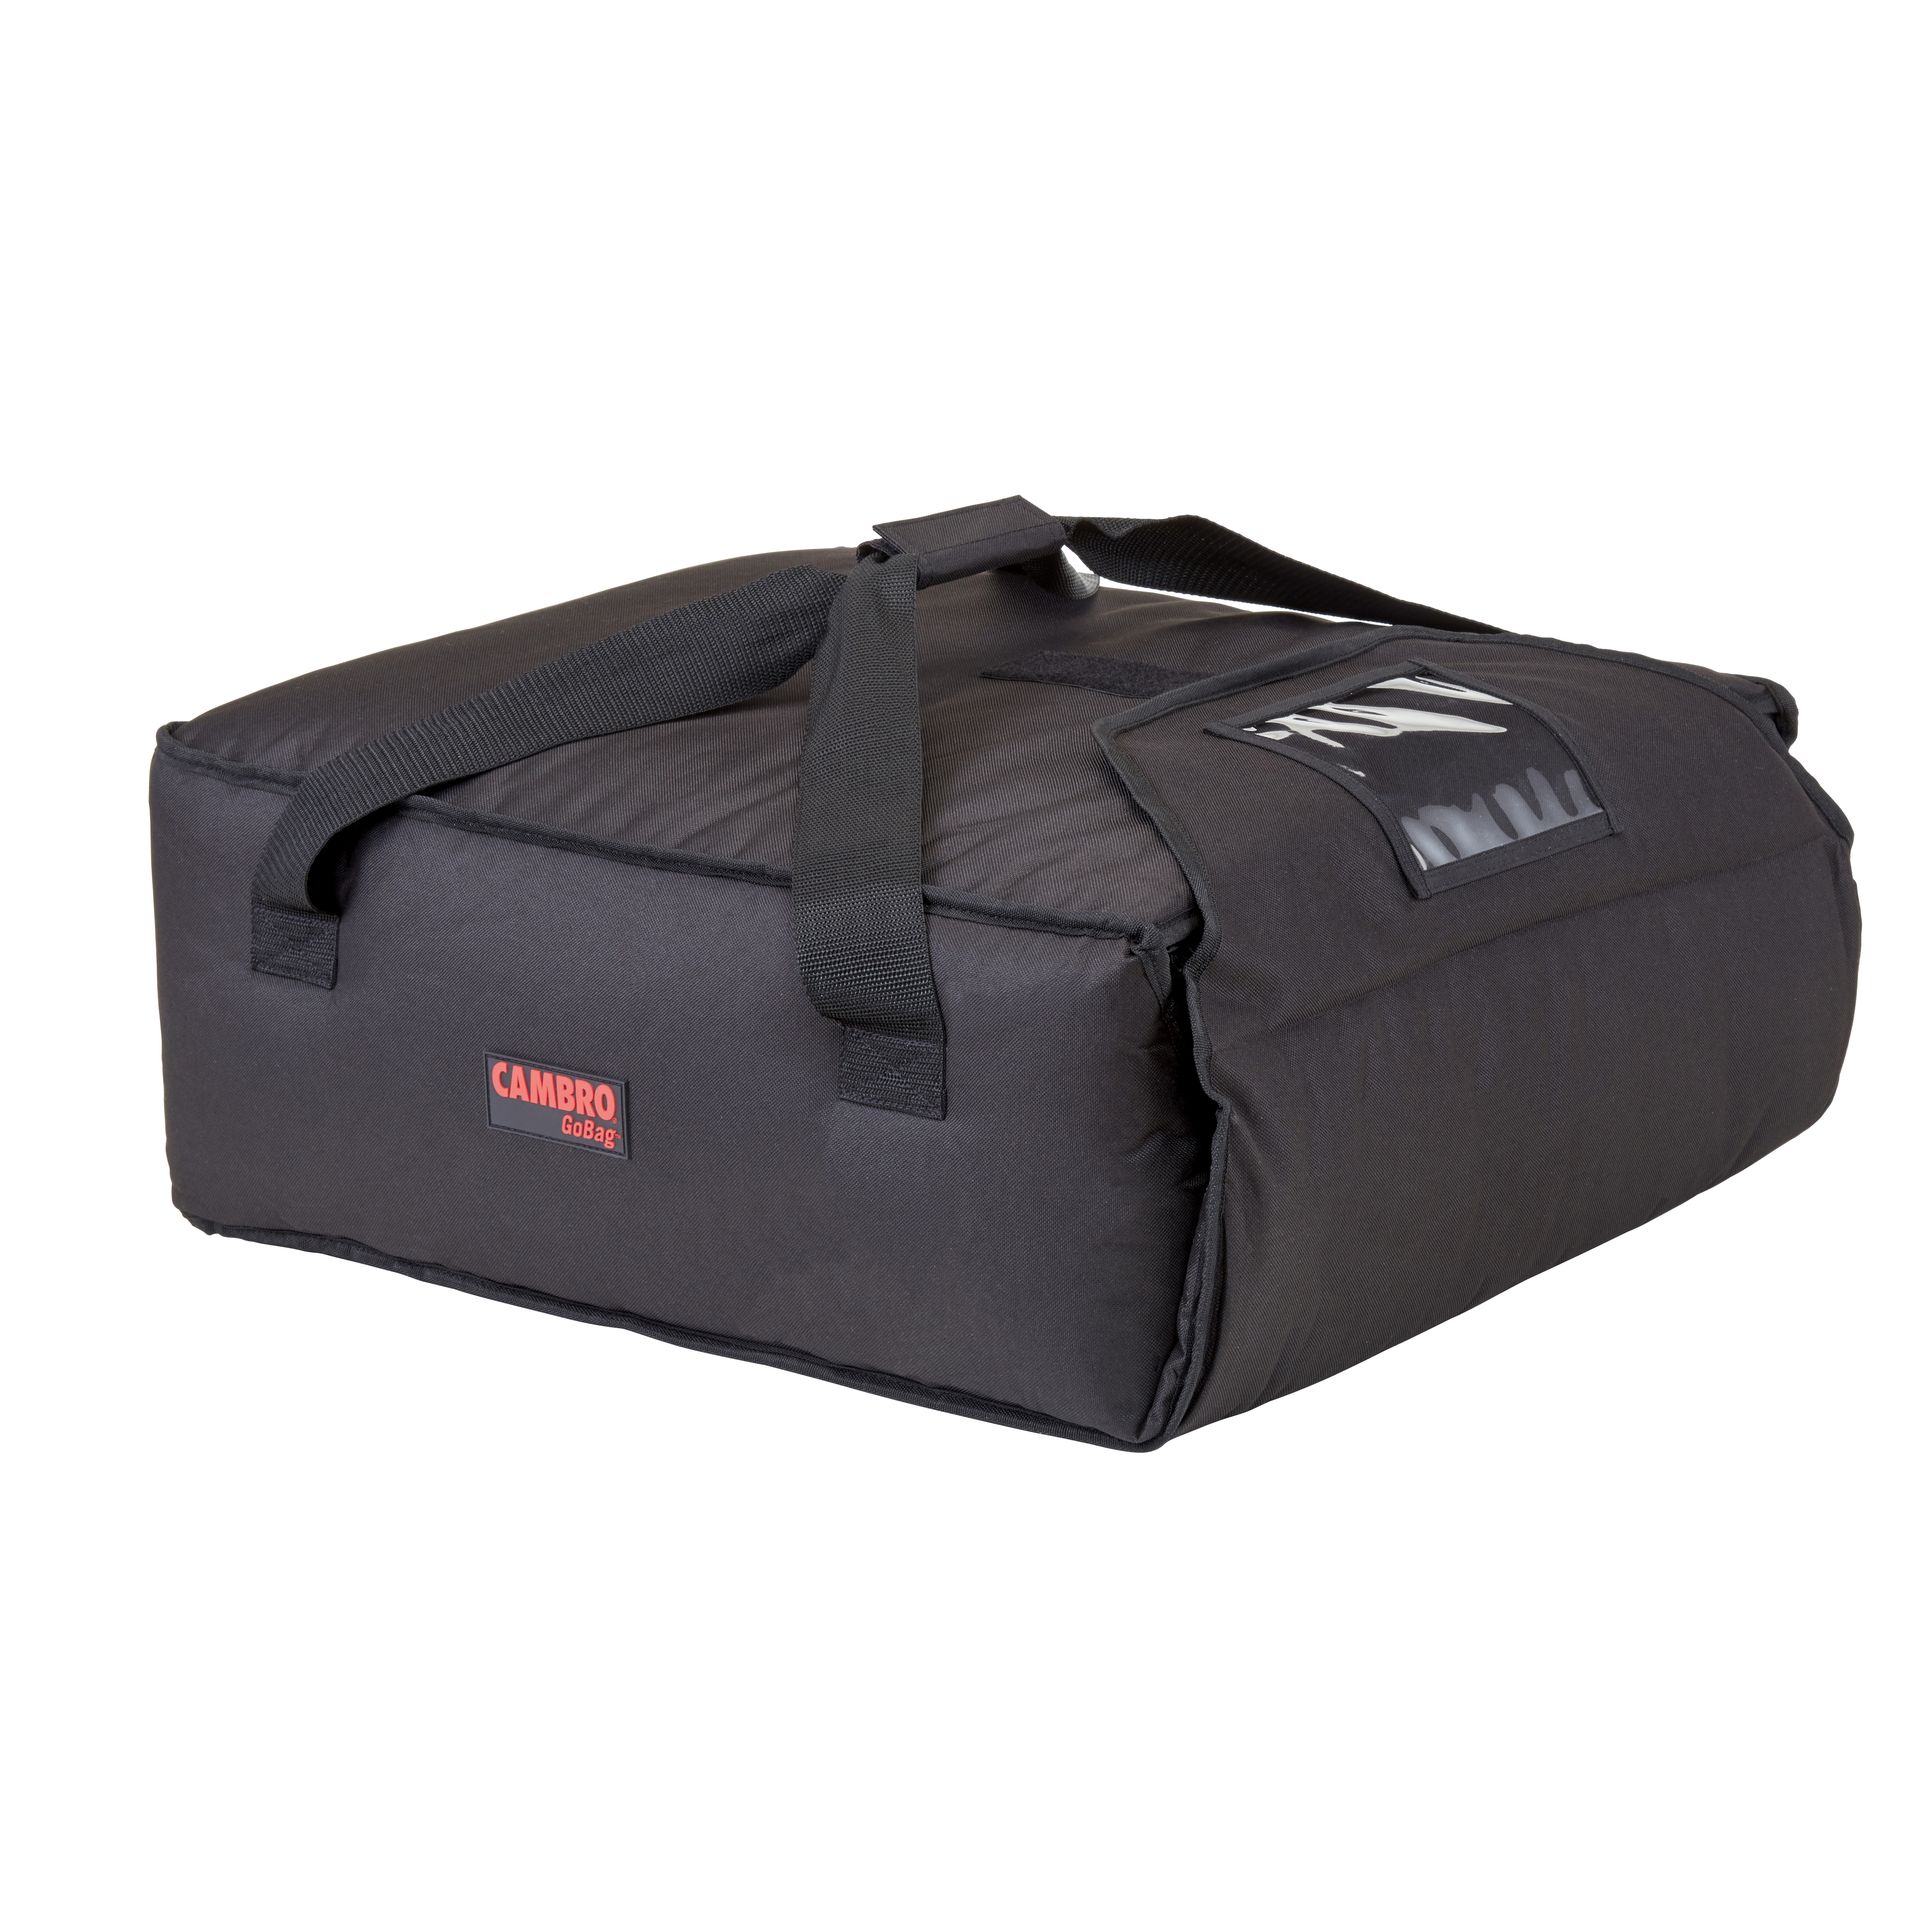 Cambro GBP318110 pizza delivery bag